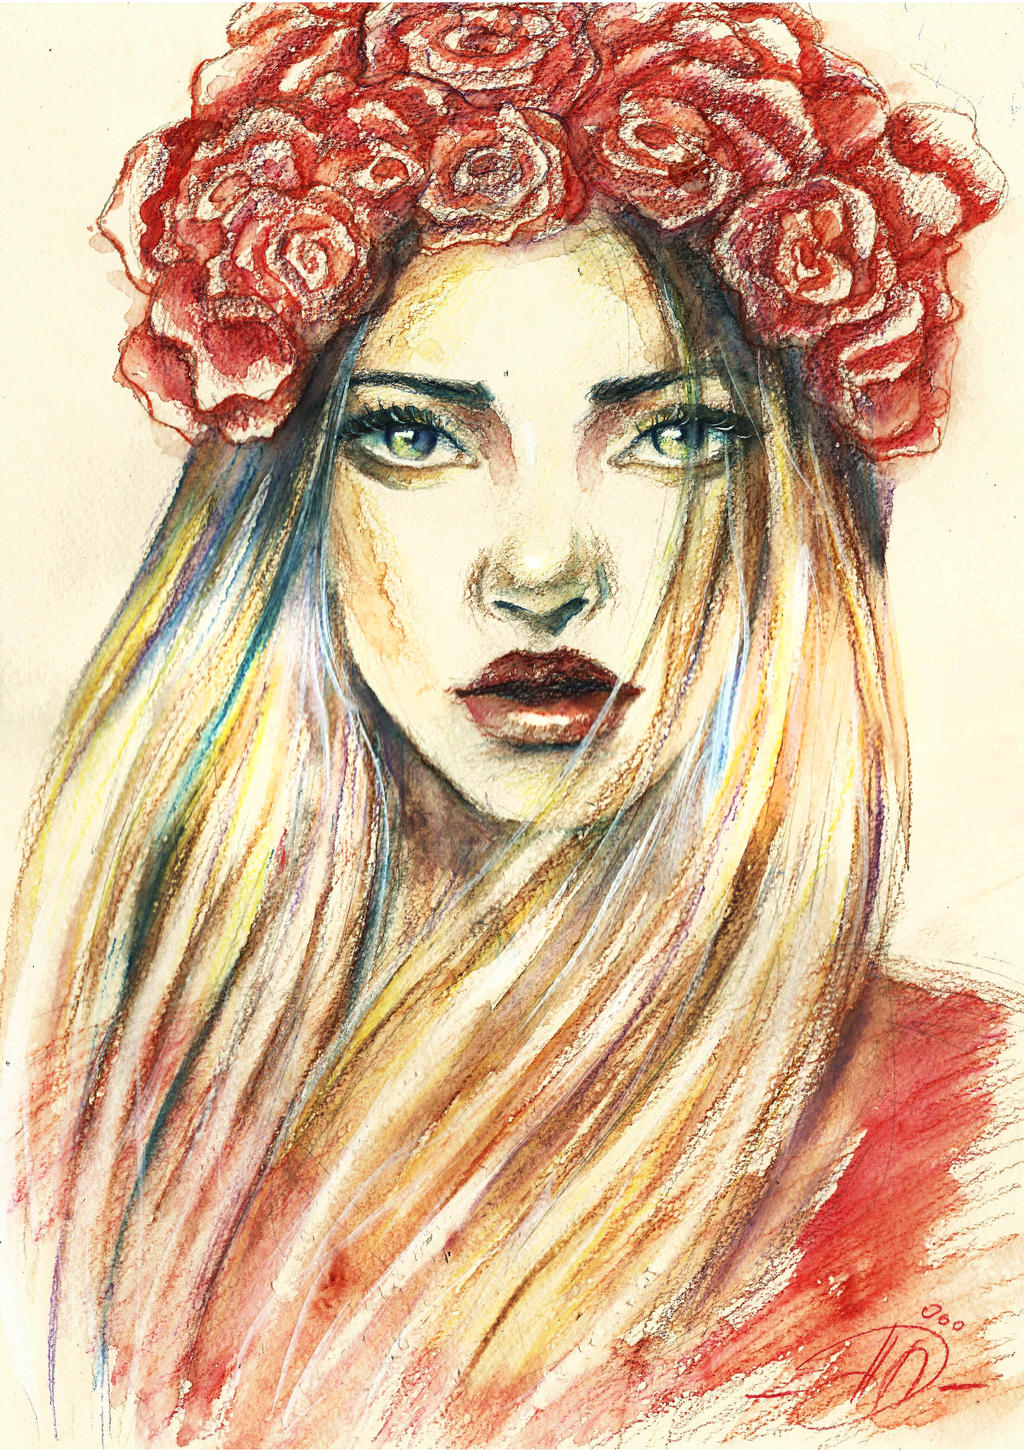 rose watercolor pencils by poplavskaya on deviantart